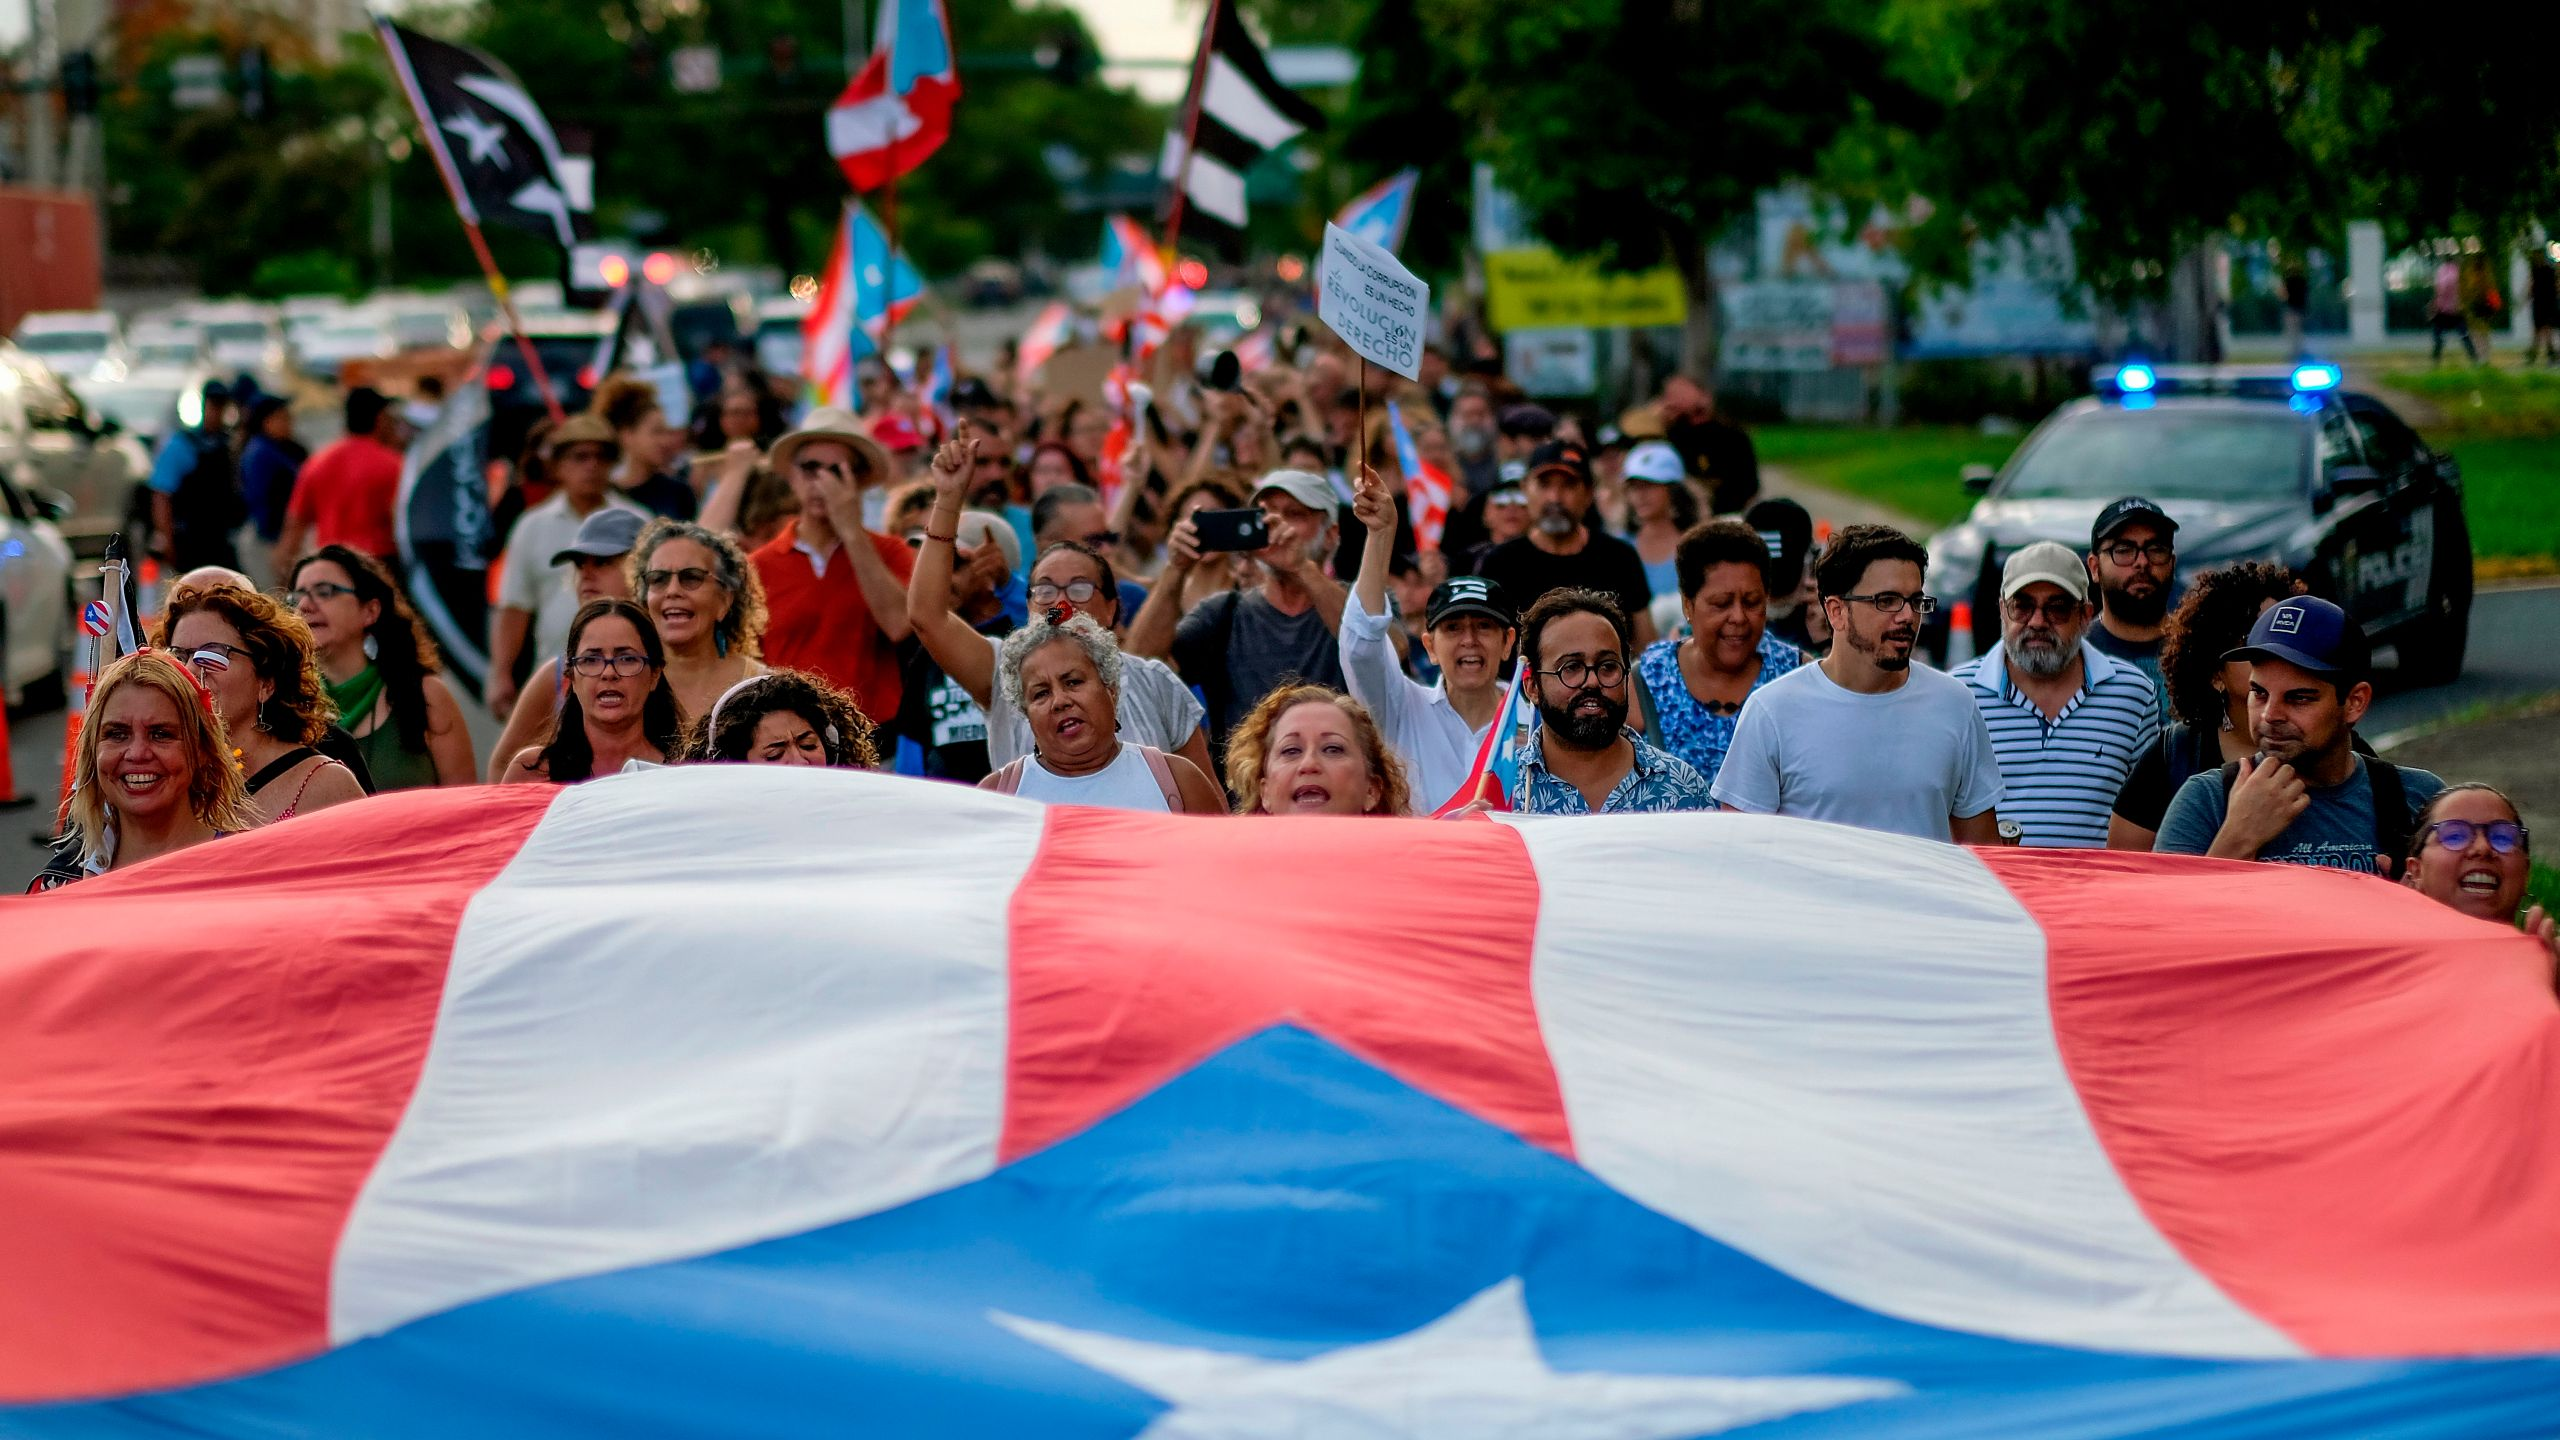 People march in protest in San Juan on July 29, 2019, against Wanda Vazquez, Puerto Rico's current Secretary of Justice, possibly becoming governor. She later rejected the job. (Credit: RICARDO ARDUENGO/AFP/Getty Images)